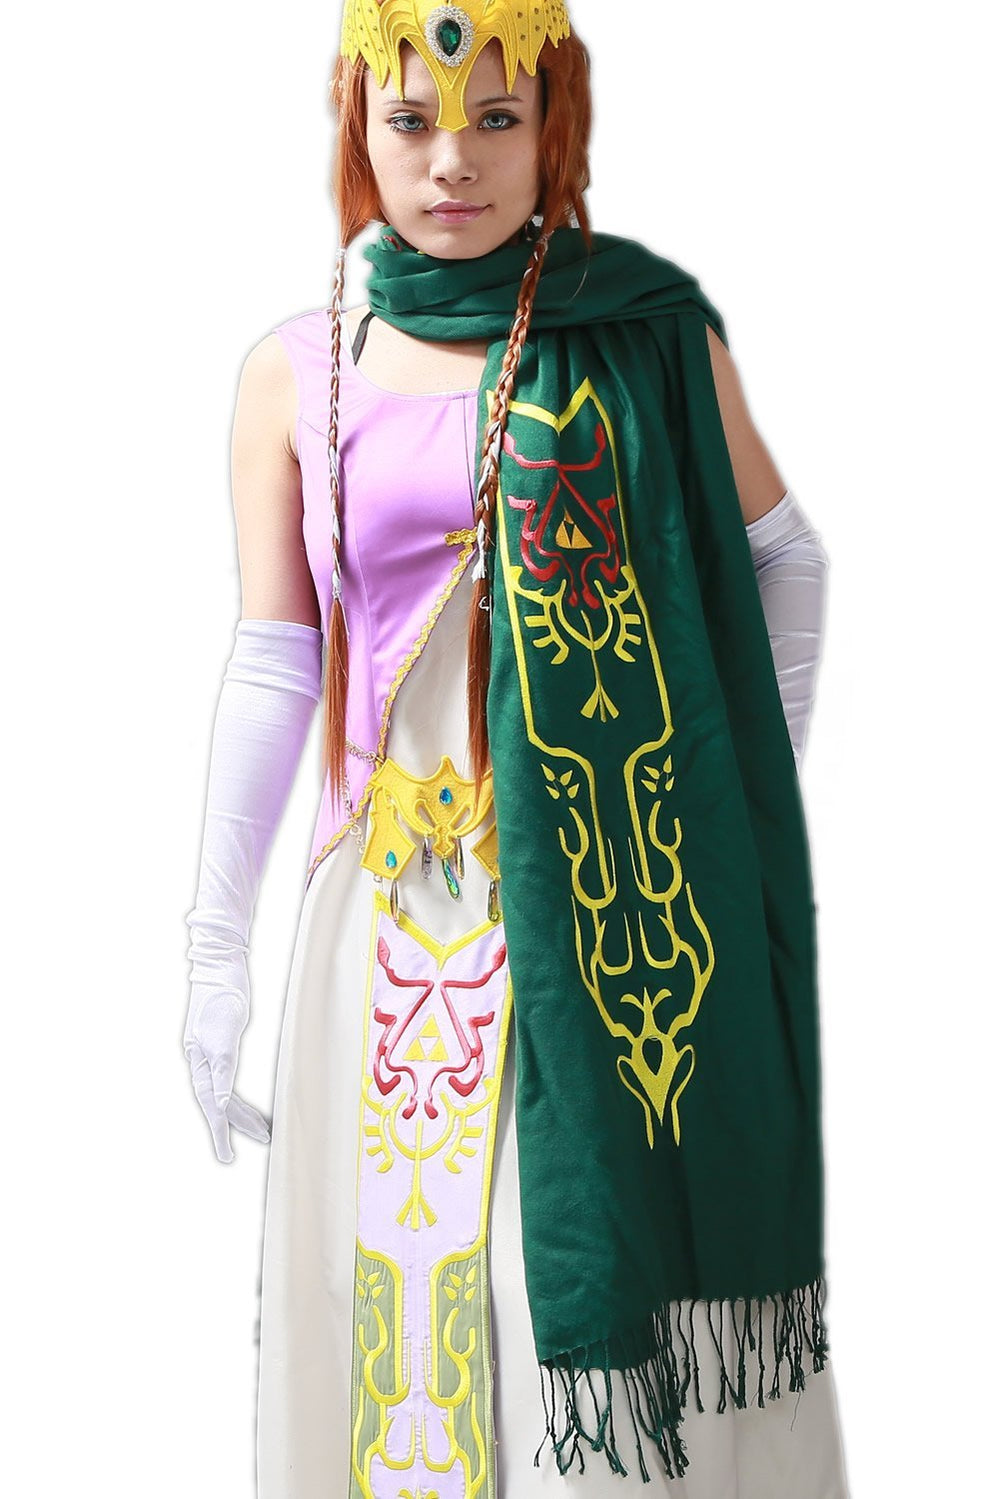 xcoser-de,Xcoser New Arrival Zelda Scarf The Legend of Zelda Cosplay Scarf,Game Cosplay,Themes